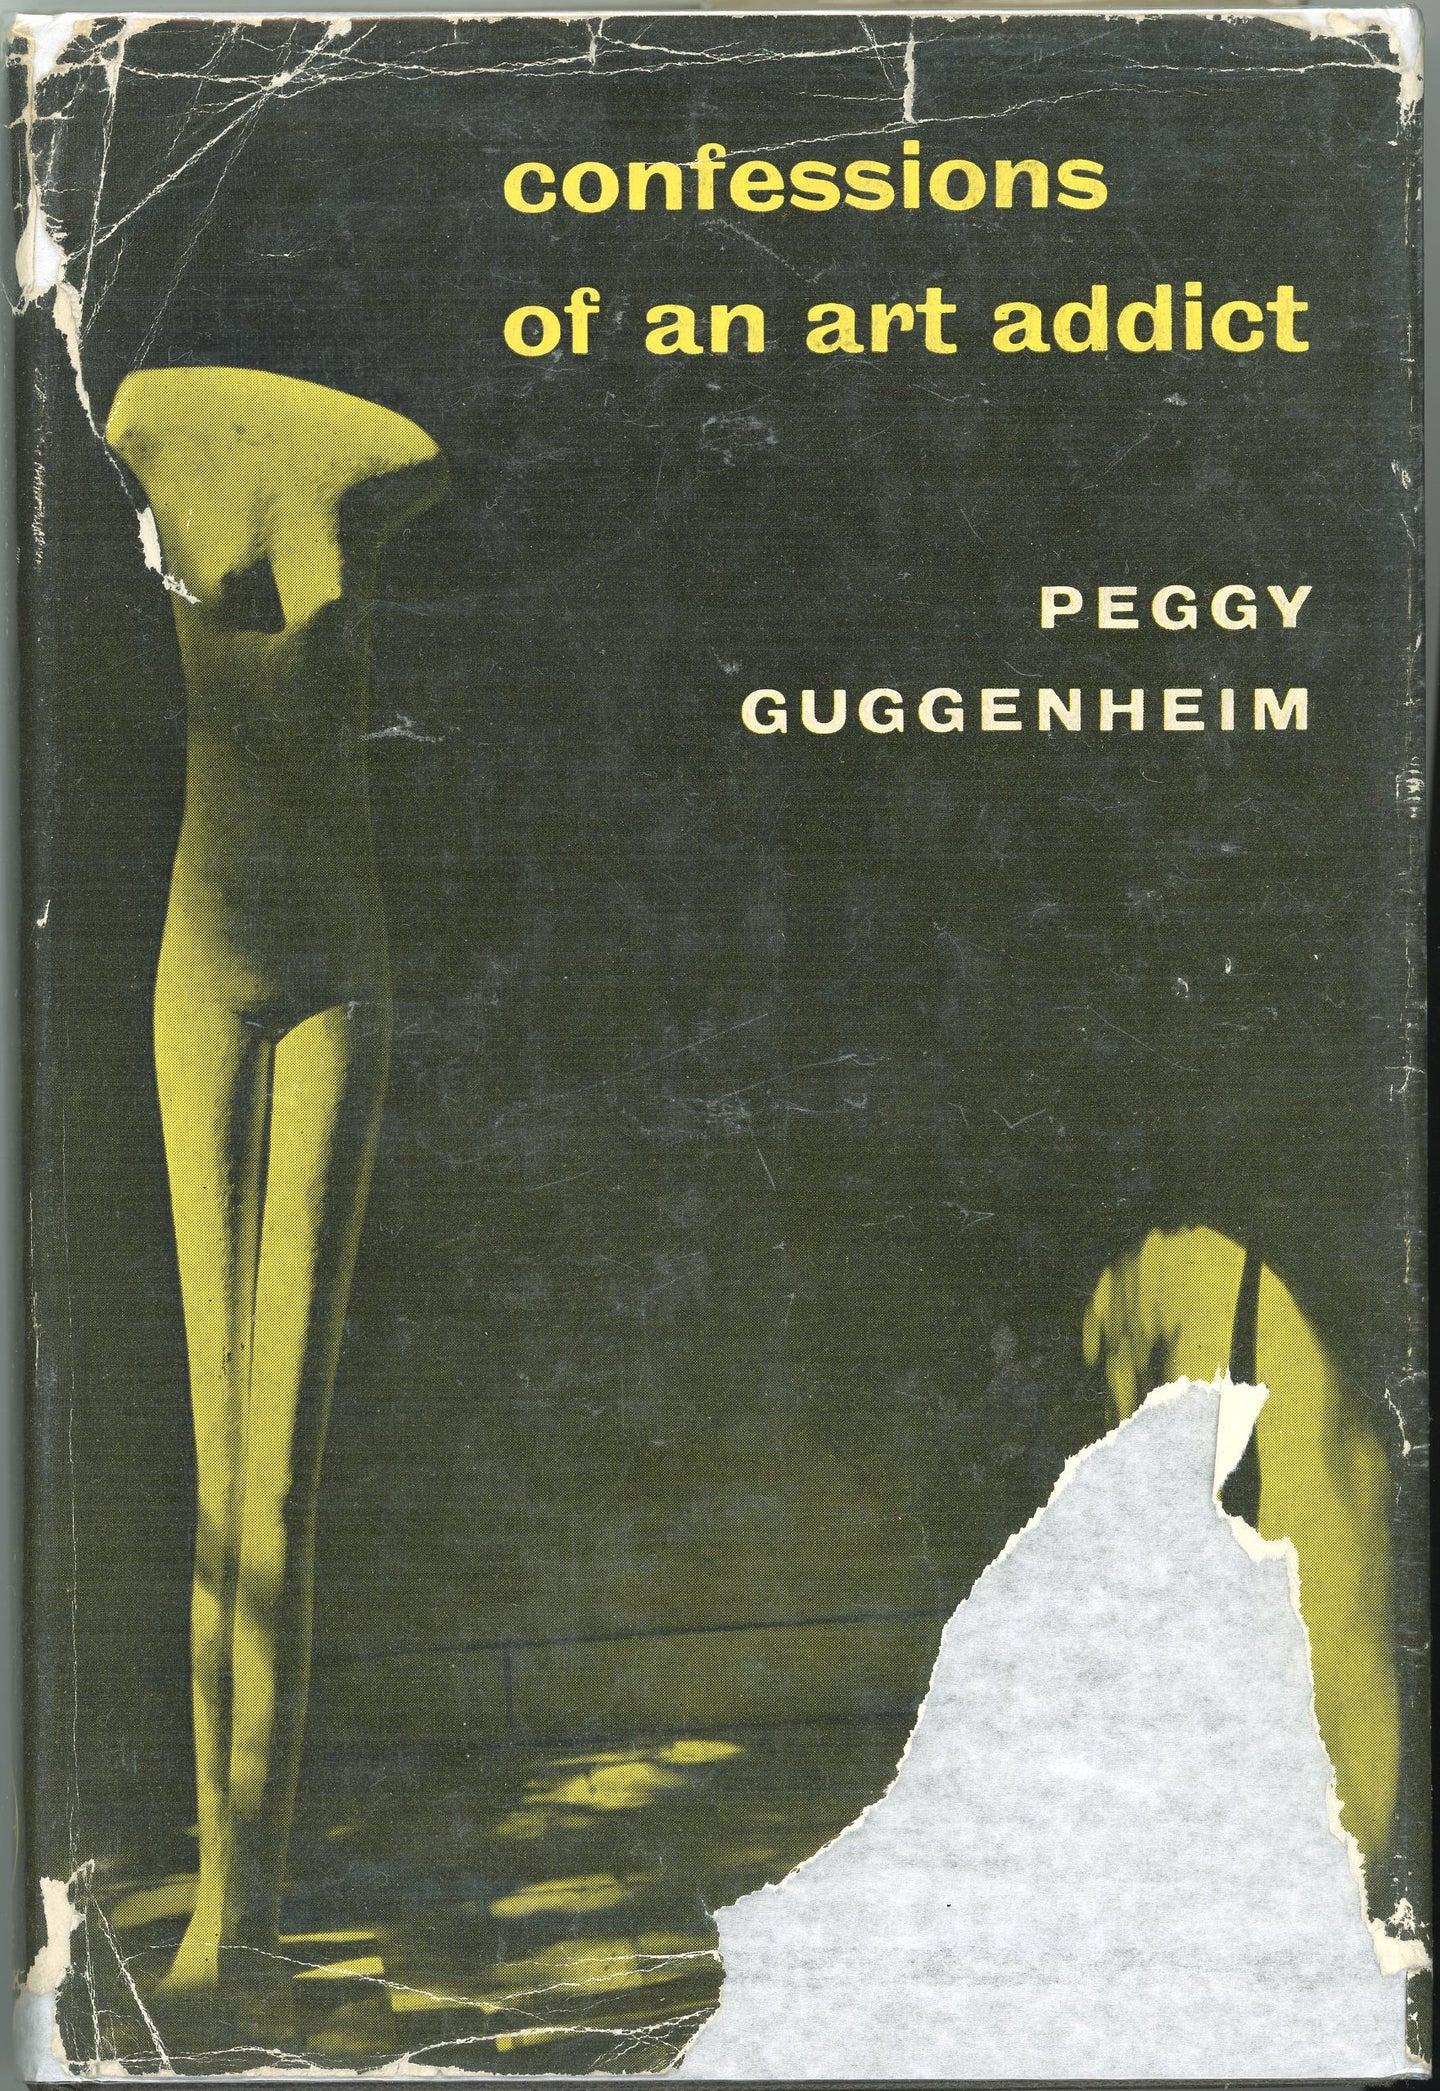 Confessions of an art addict Peggy Guggenheim